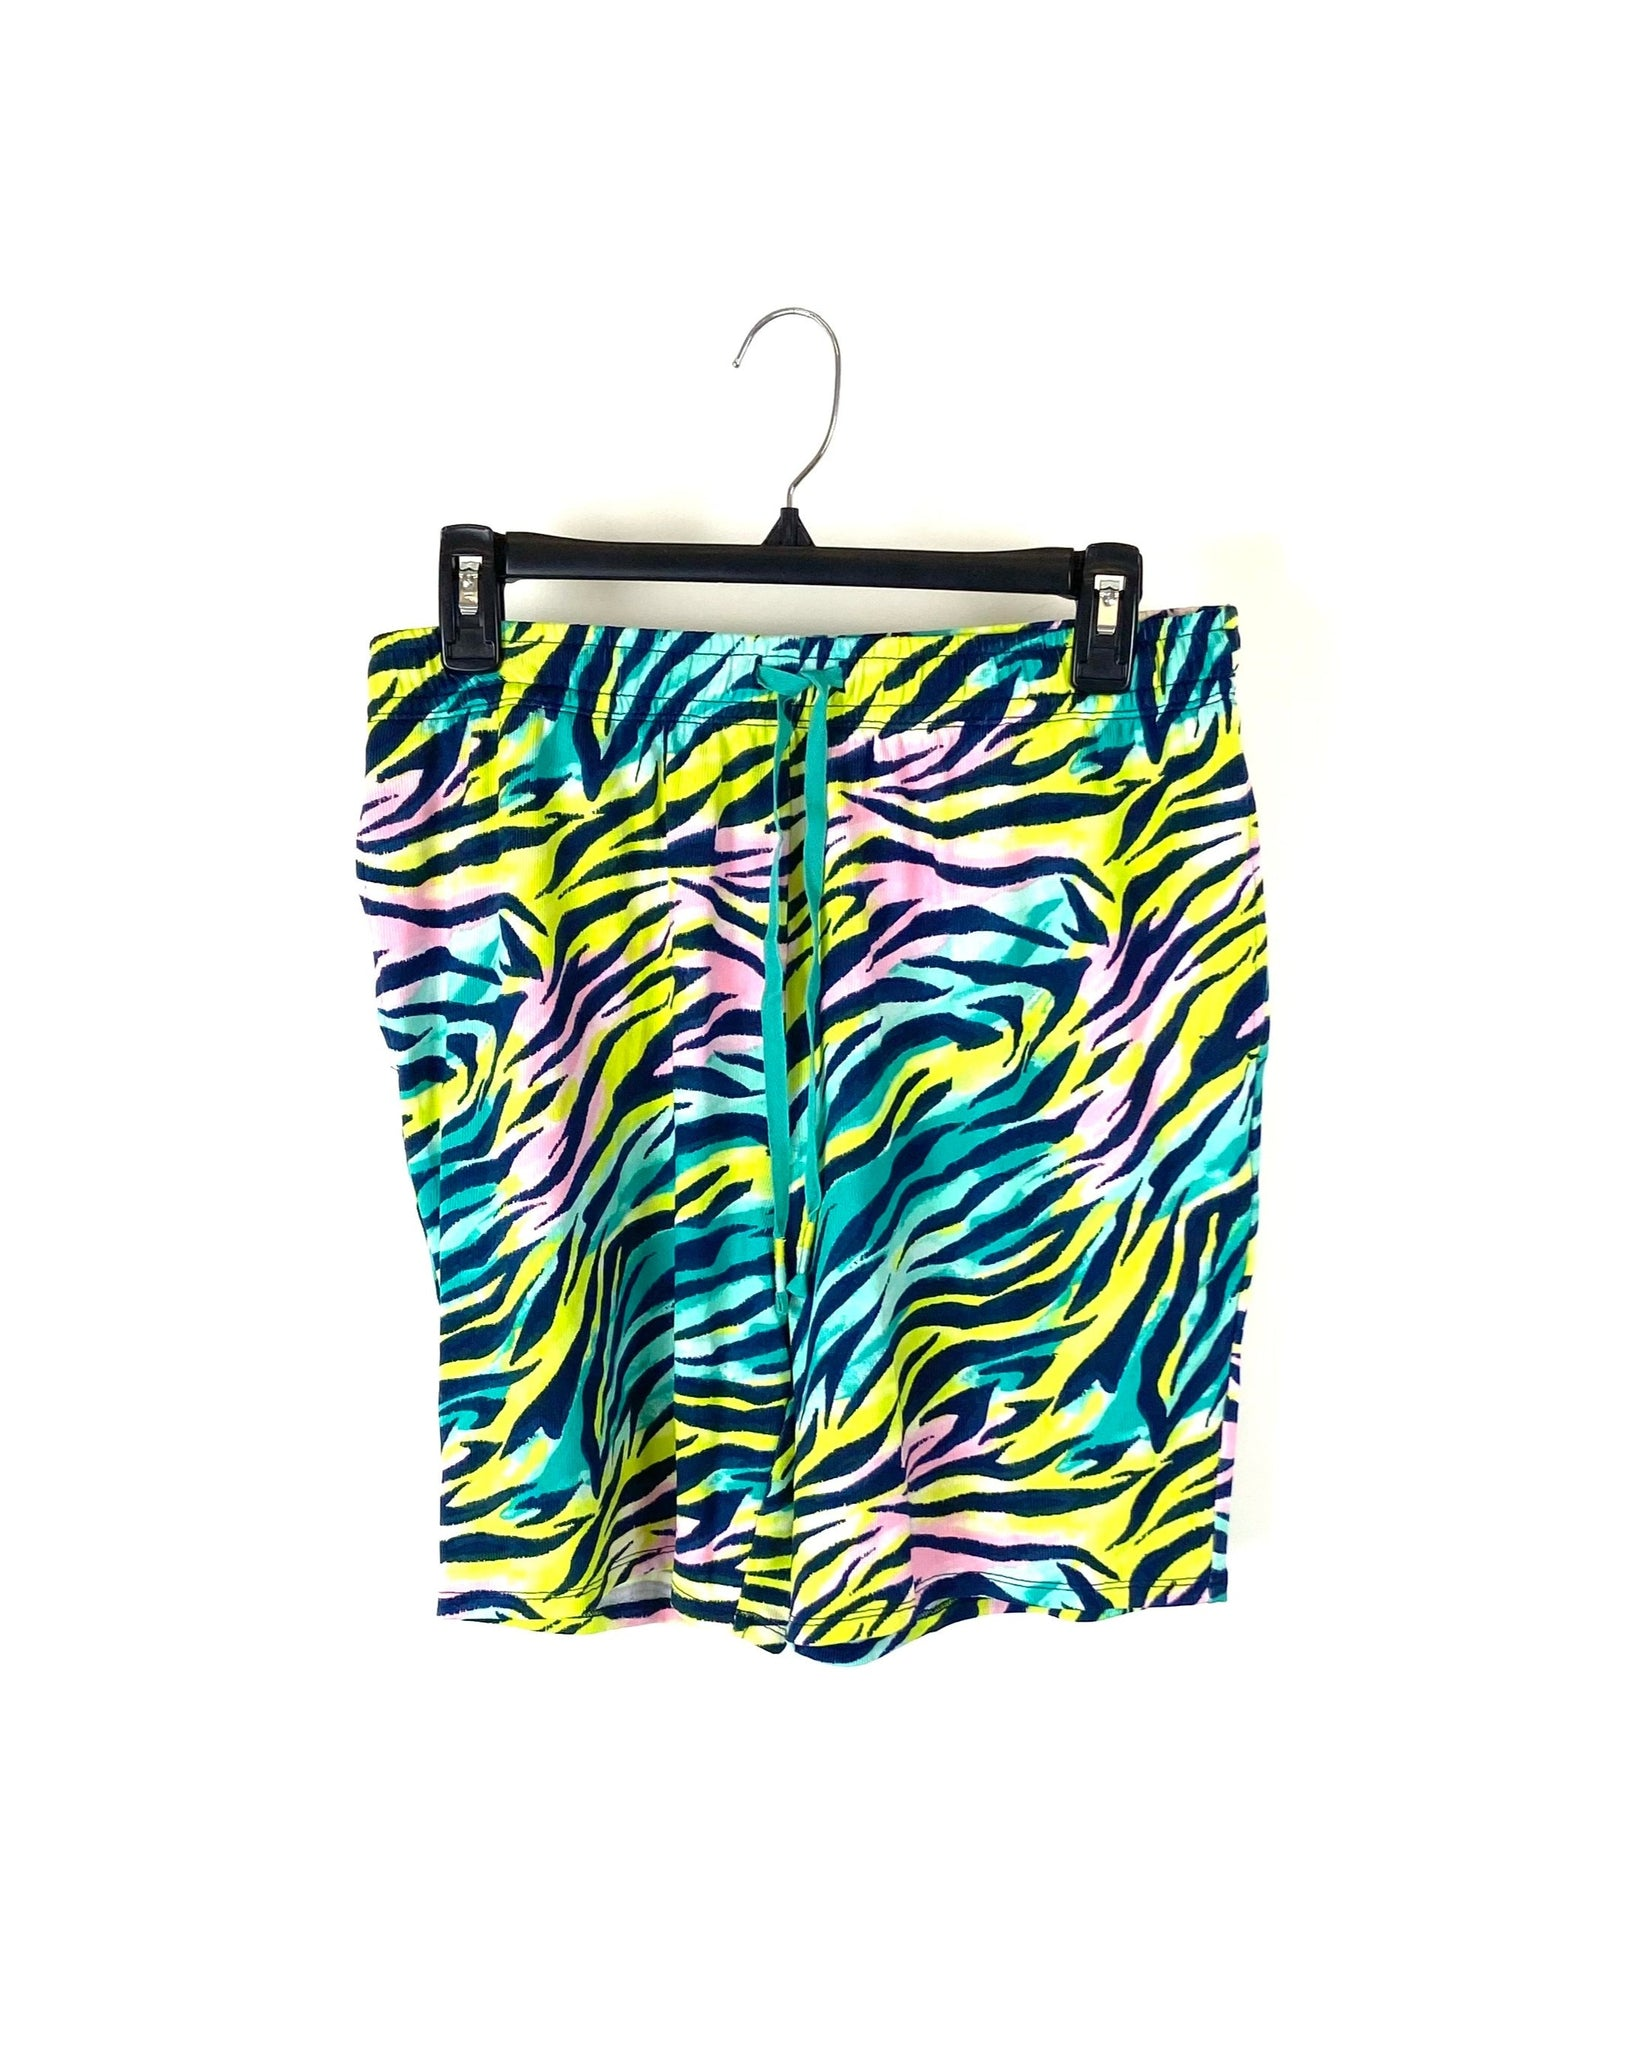 Lulu Frost Gold Number 6 Necklace - New Donated From The Designer